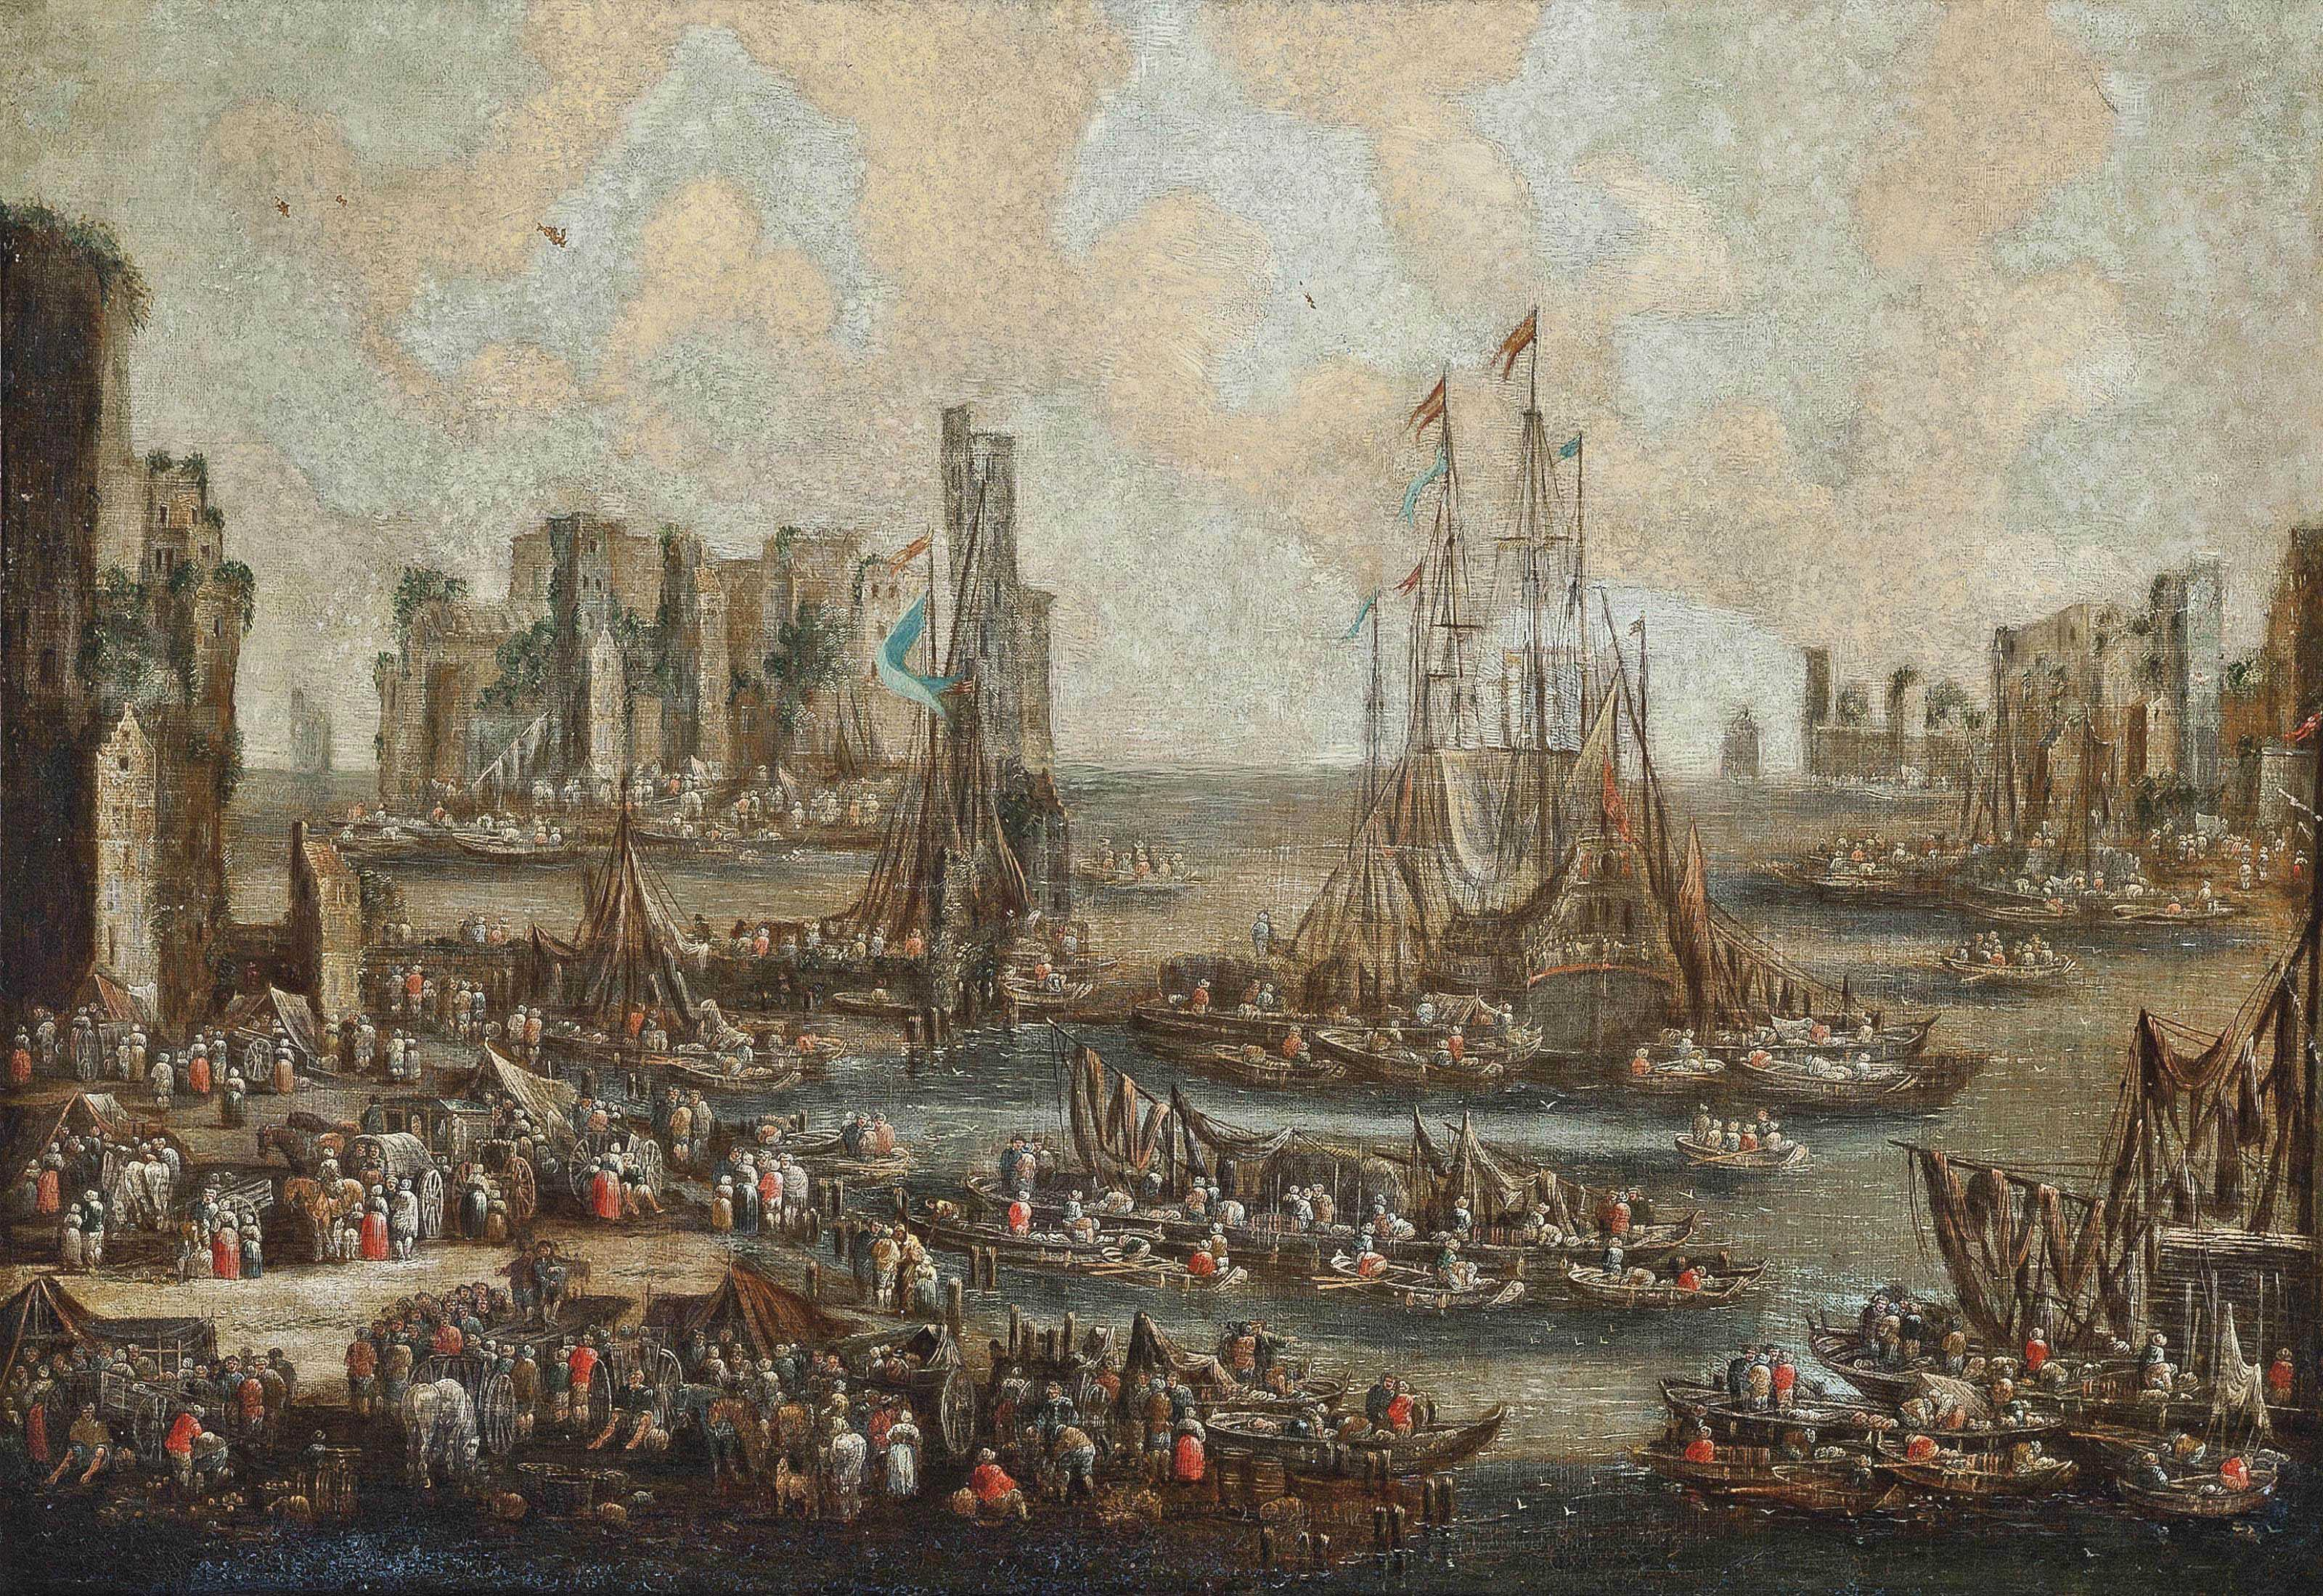 A Mediterranean harbour scene with ships unloading their cargo